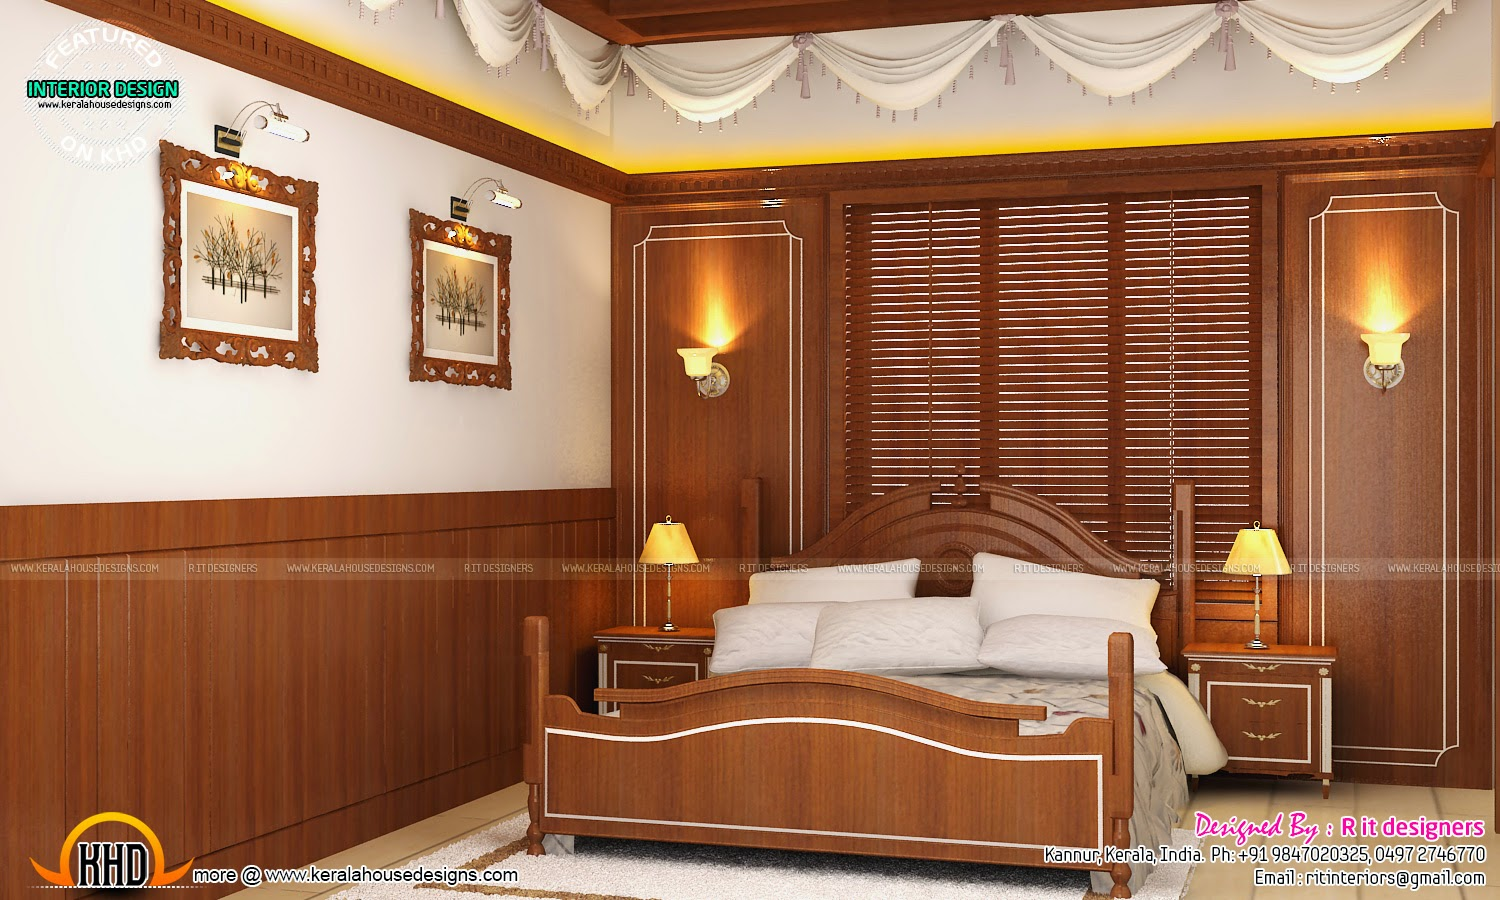 Flat roof house tamilnadu keralahousedesigns - Bedroom house designs pictures ...